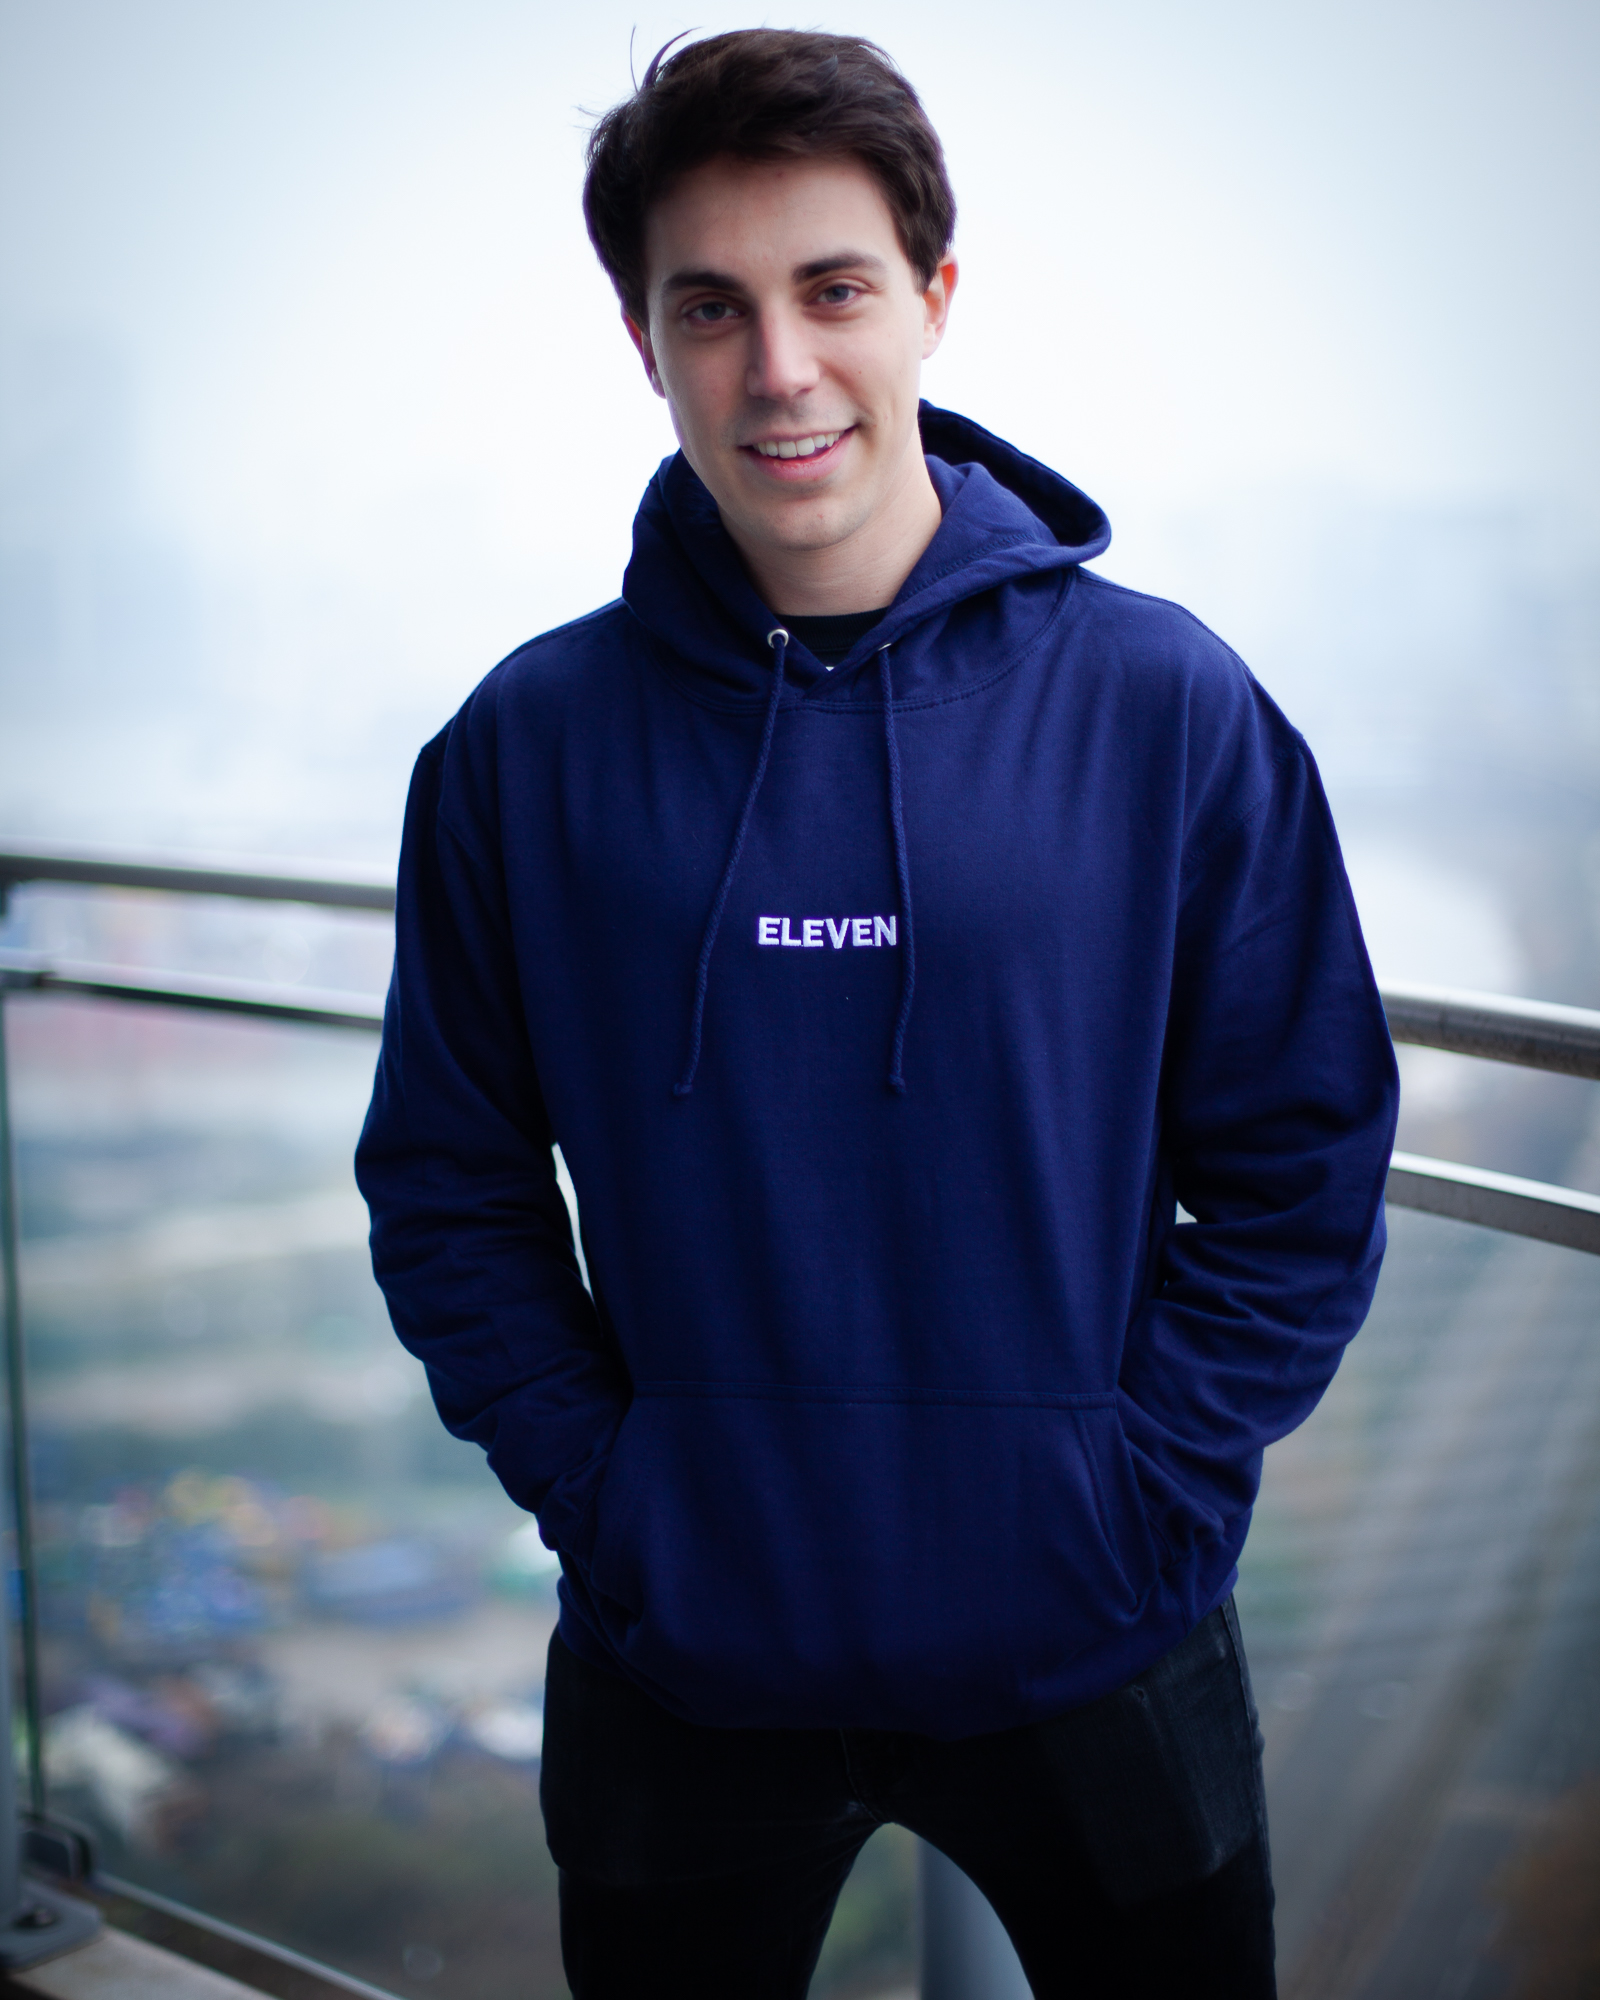 TEAM ELEVEN Embroidered Hoodie - Navy - Area 11